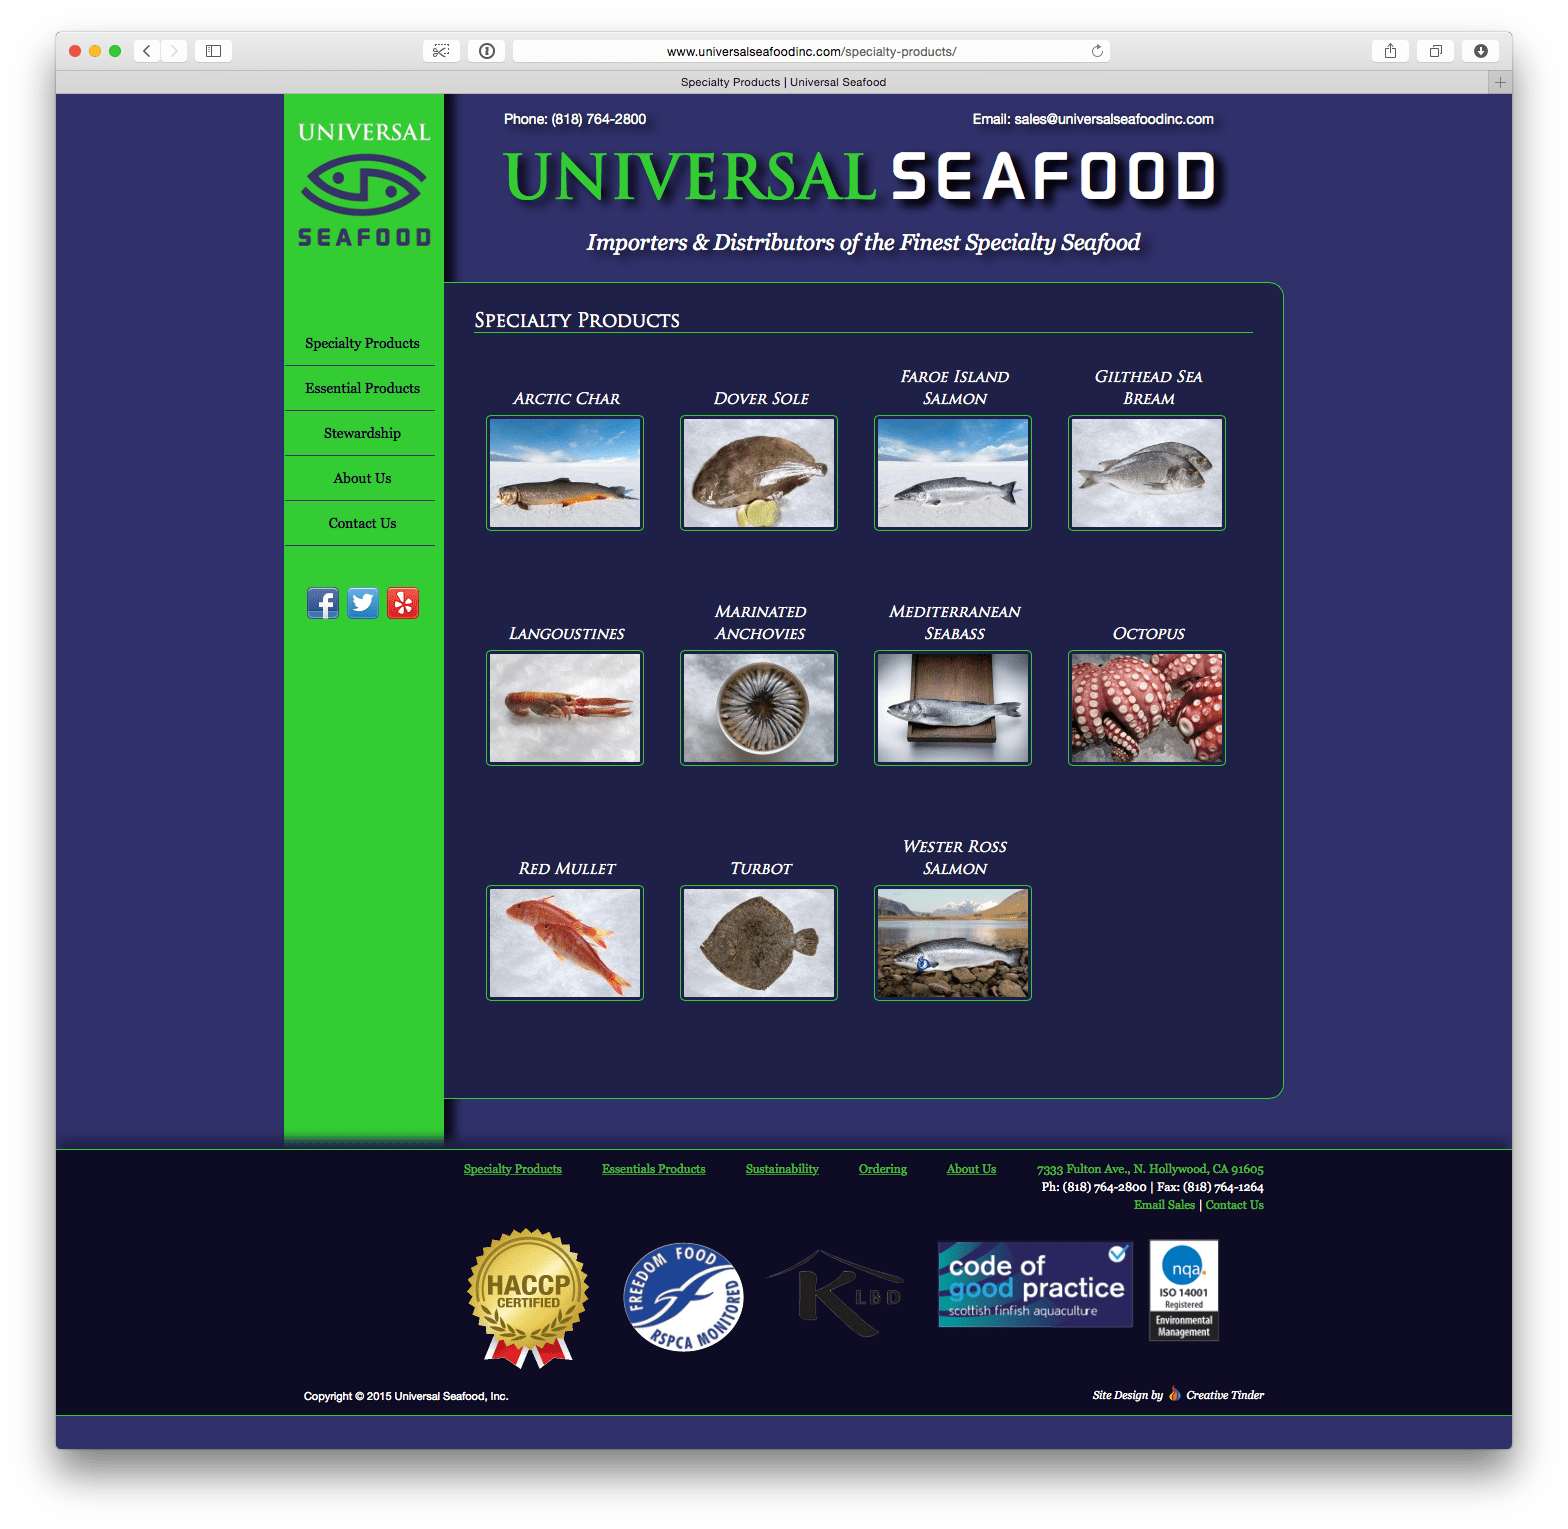 UniversalSeafoodInc.com Specialty Products Page